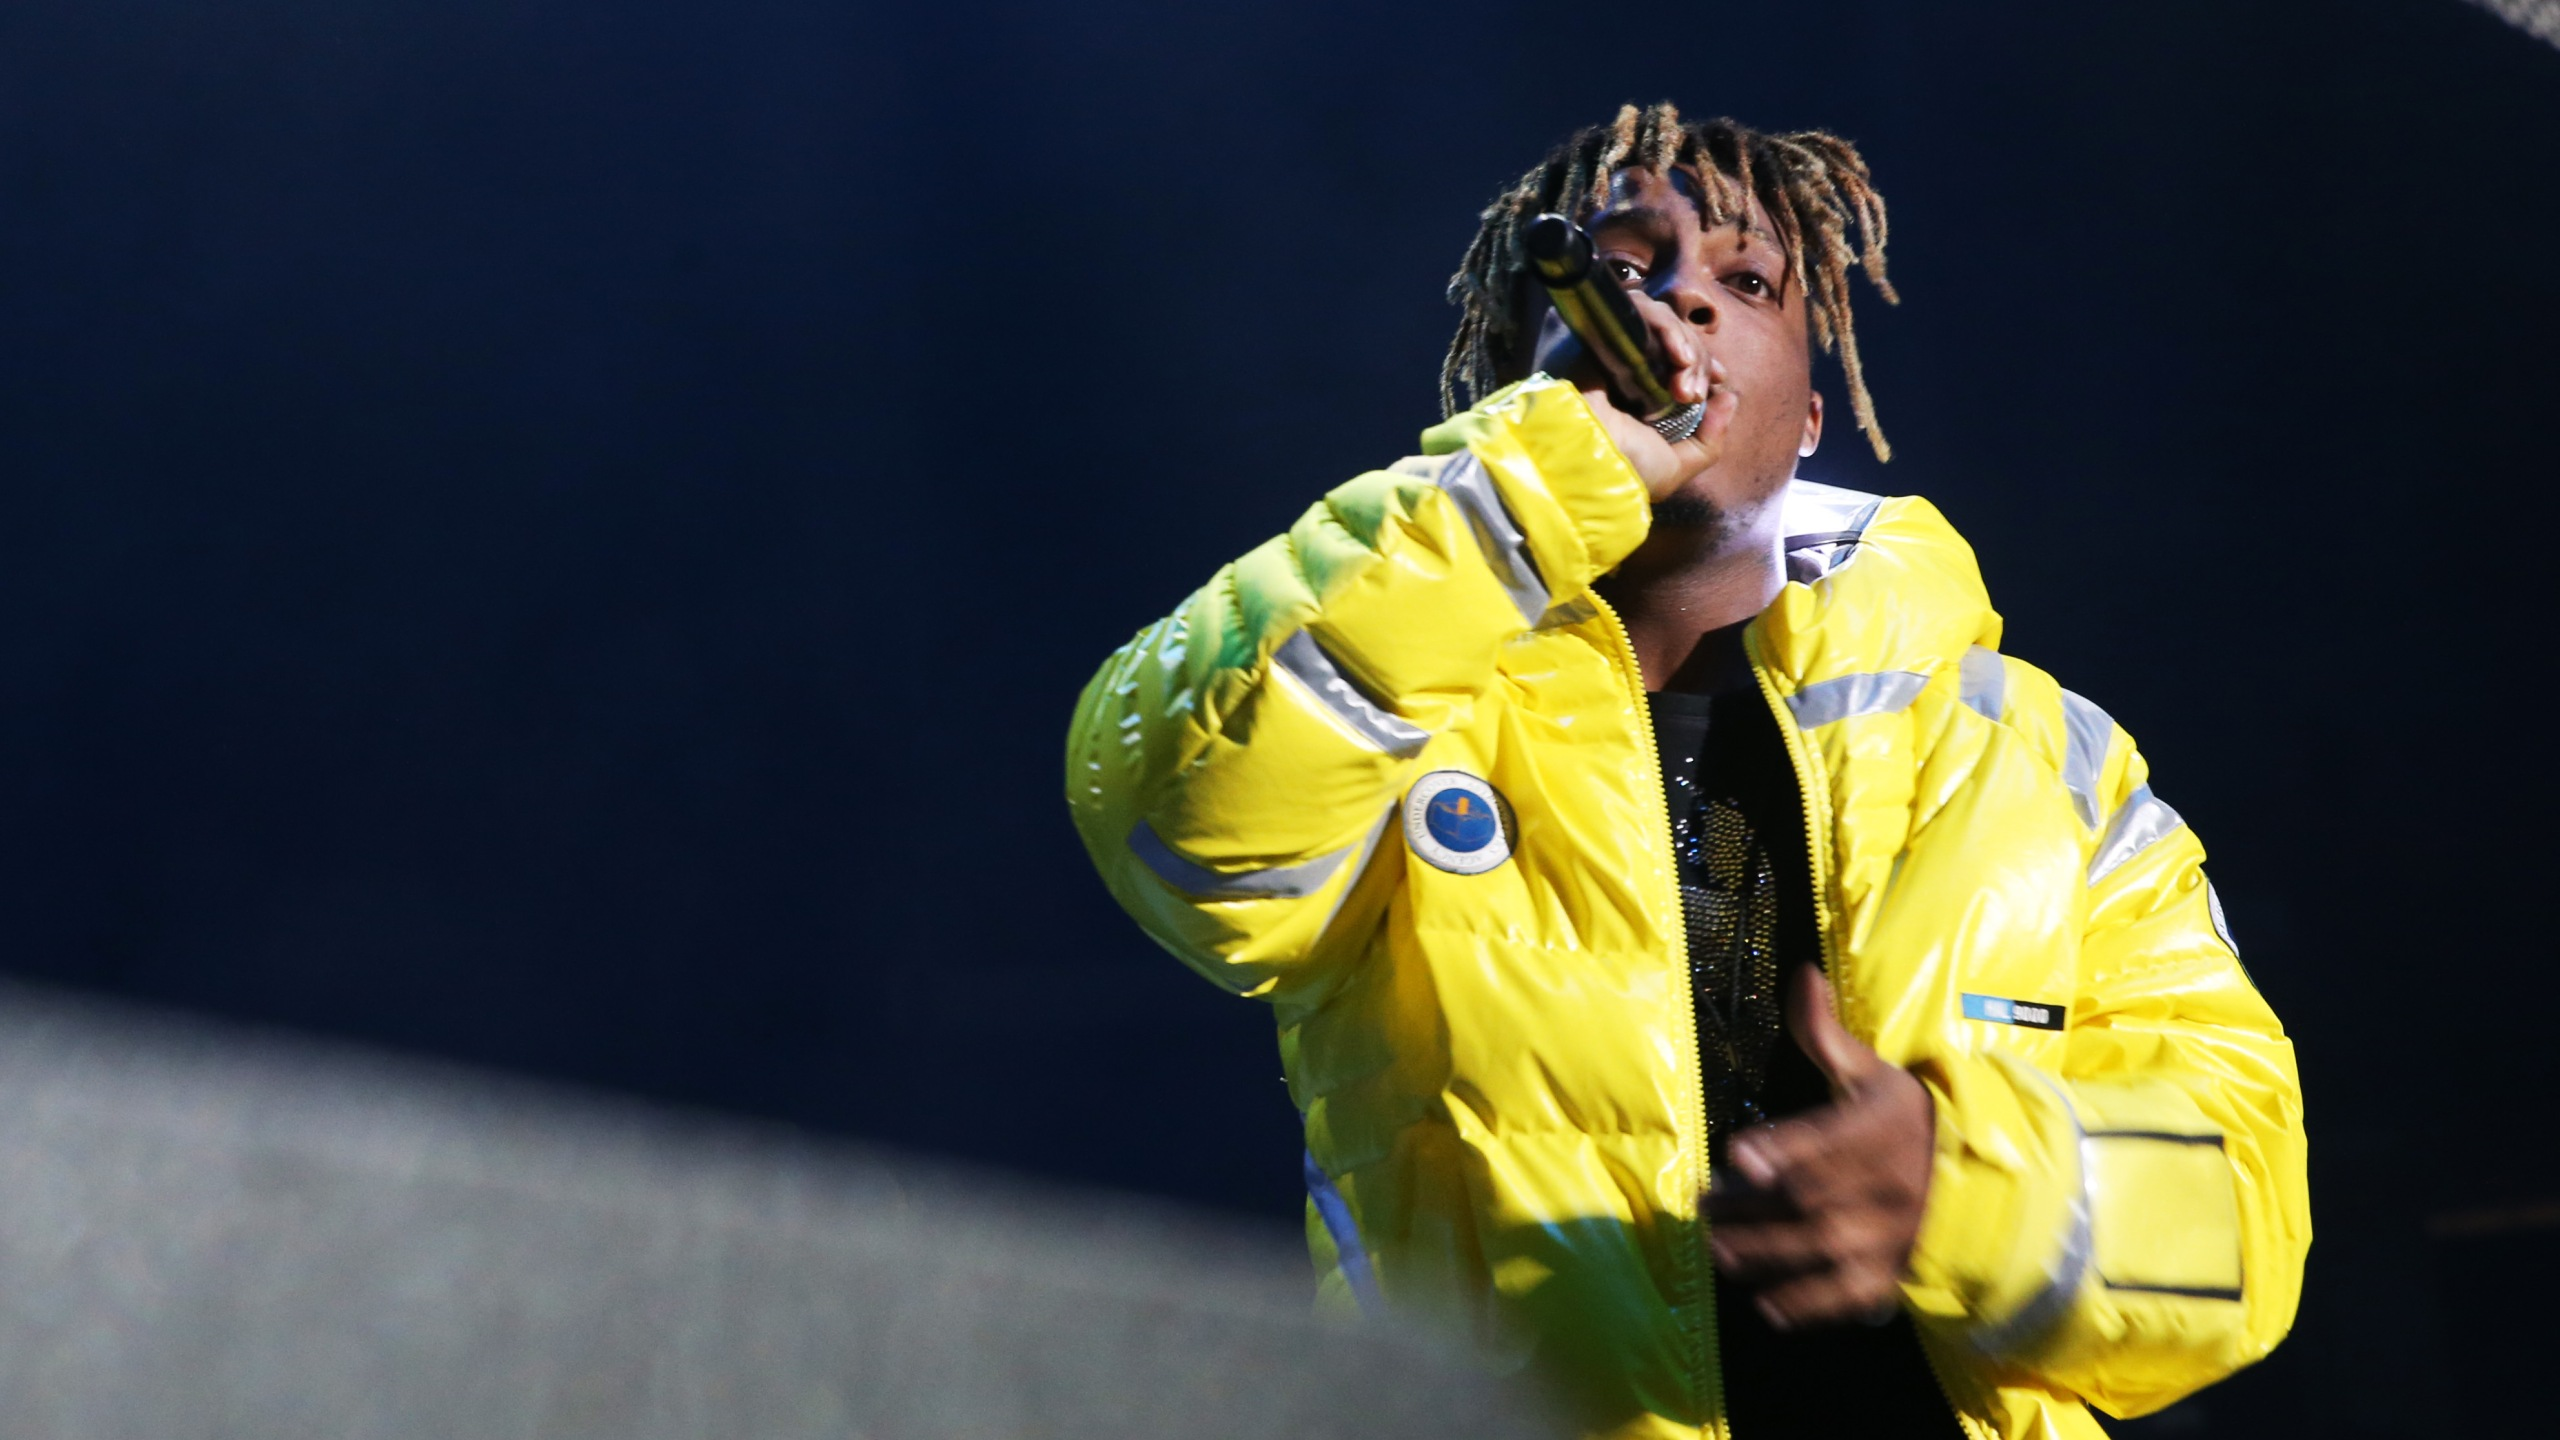 Rapper Juice Wrld performs at Power 105.1's Powerhouse 2018 at Prudential Center on Oct. 28, 2018, in Newark, New Jersey. (Bennett Raglin/Getty Images for Power 105.1)